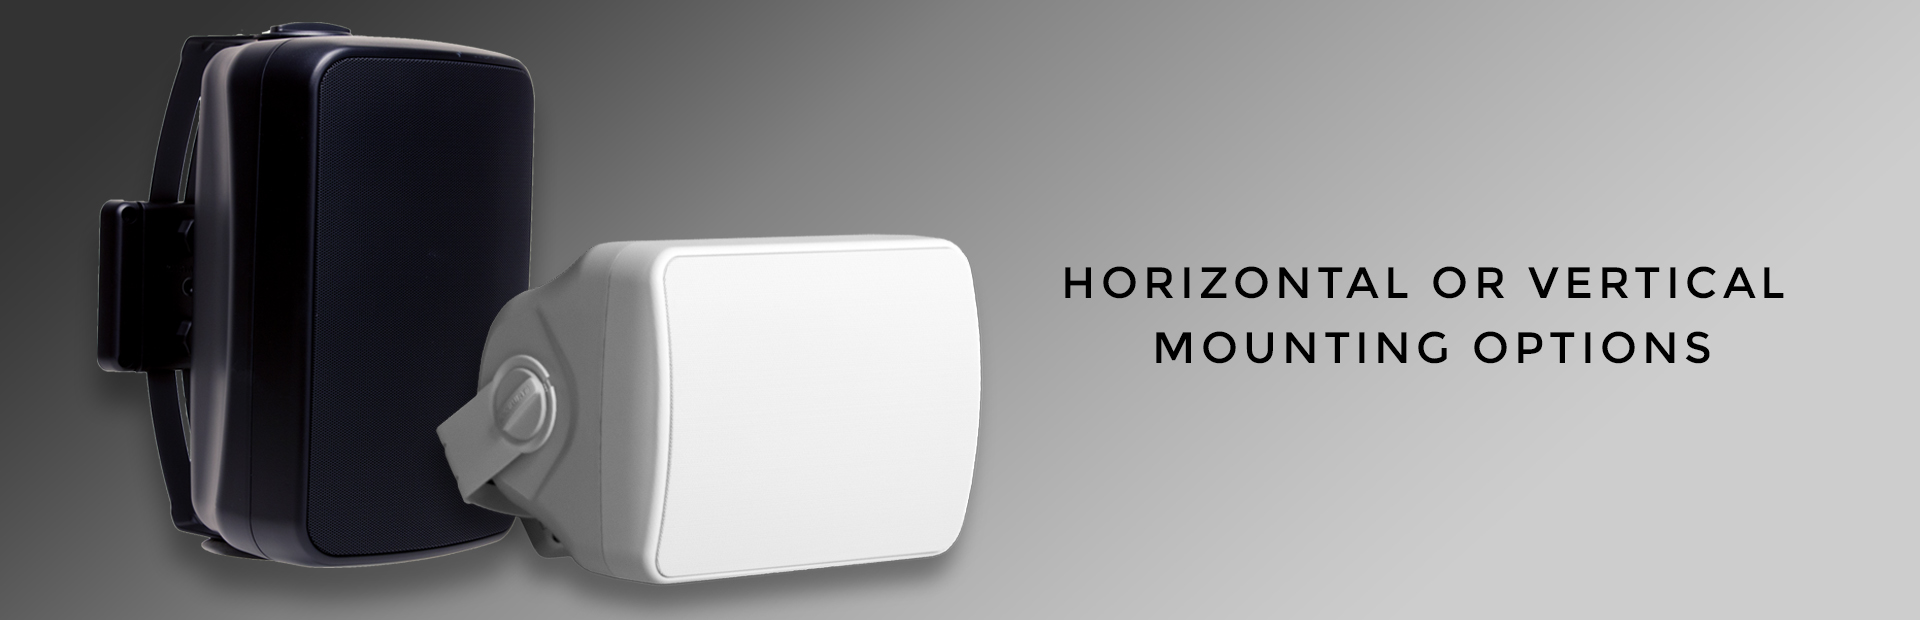 Vertical or horizontal mounting options